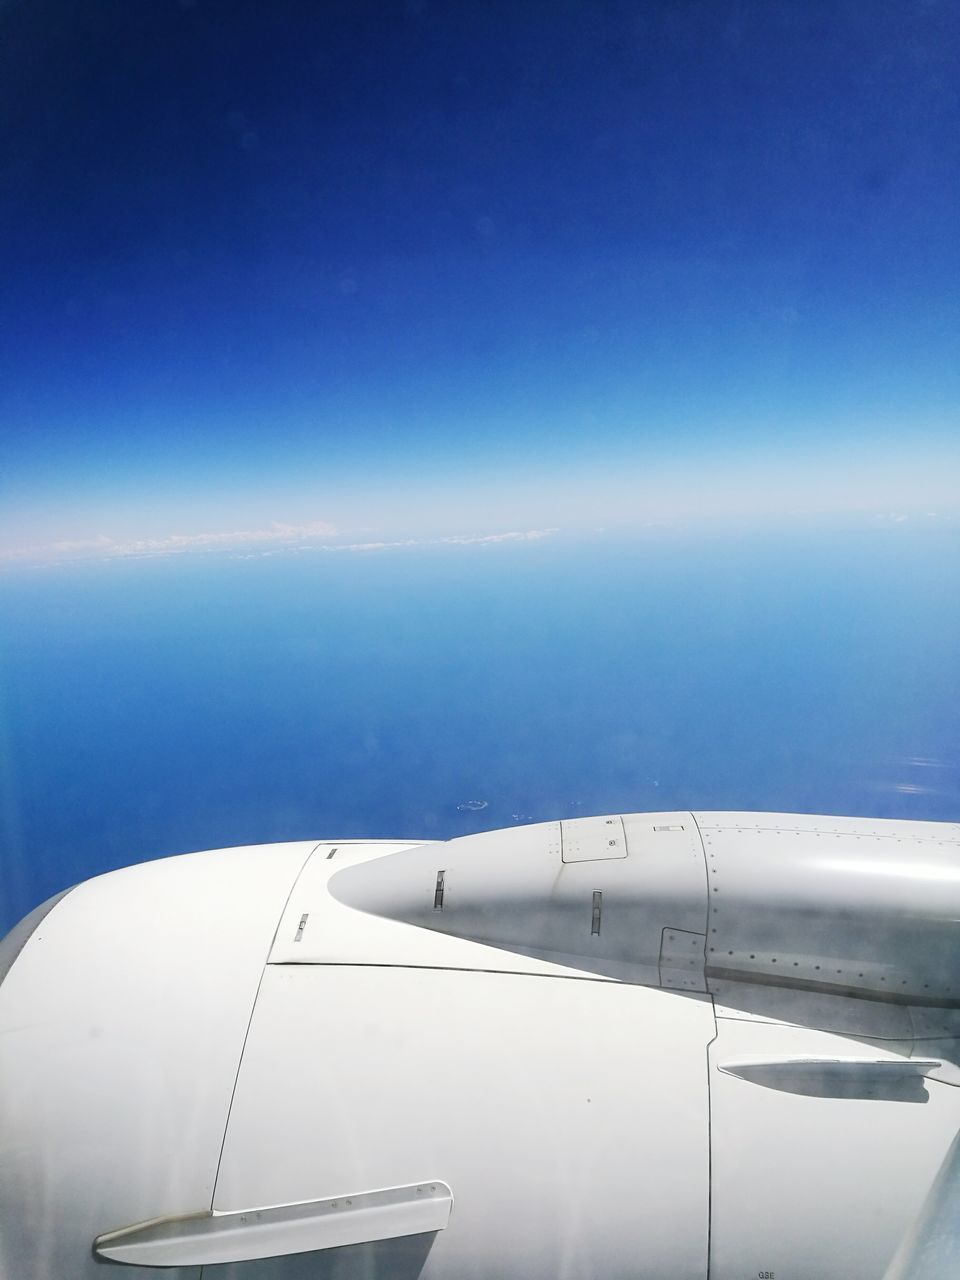 airplane, transportation, journey, air vehicle, mode of transport, blue, jet engine, airplane wing, no people, travel, aircraft wing, aerial view, day, flying, outdoors, mid-air, sky, sea, nature, close-up